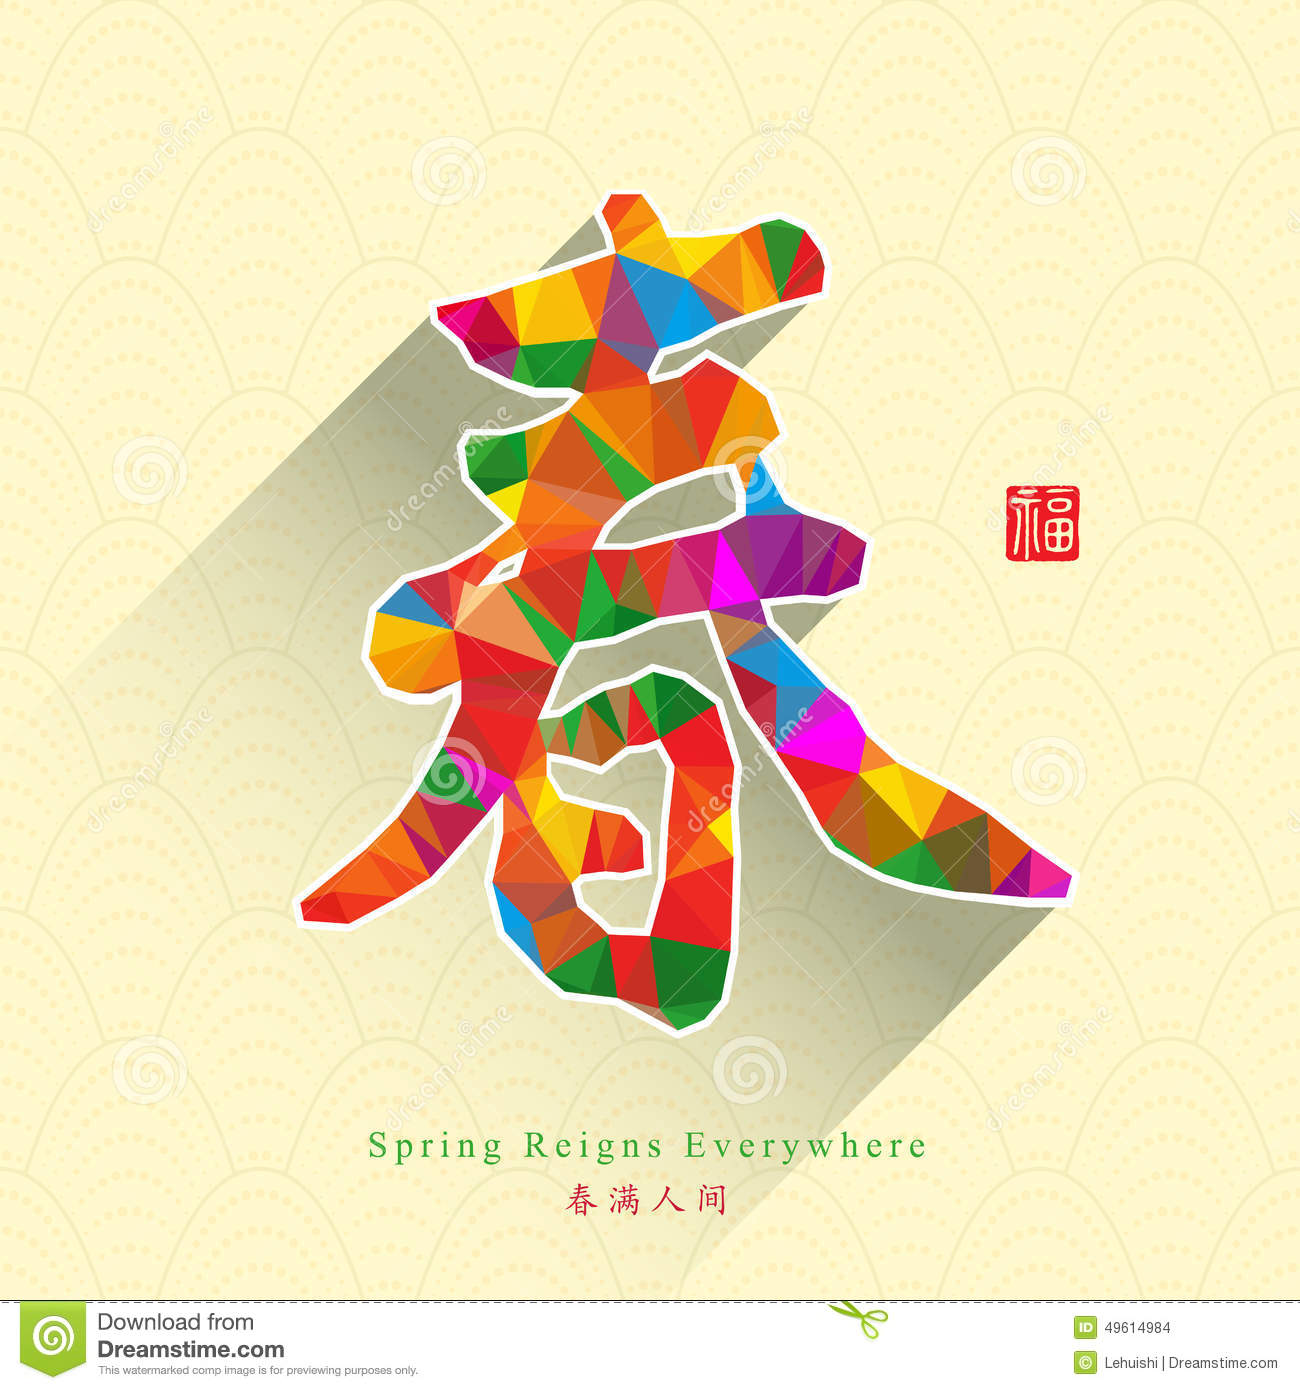 Chinese New Year Traditional Greeting Card Design With Low Poly